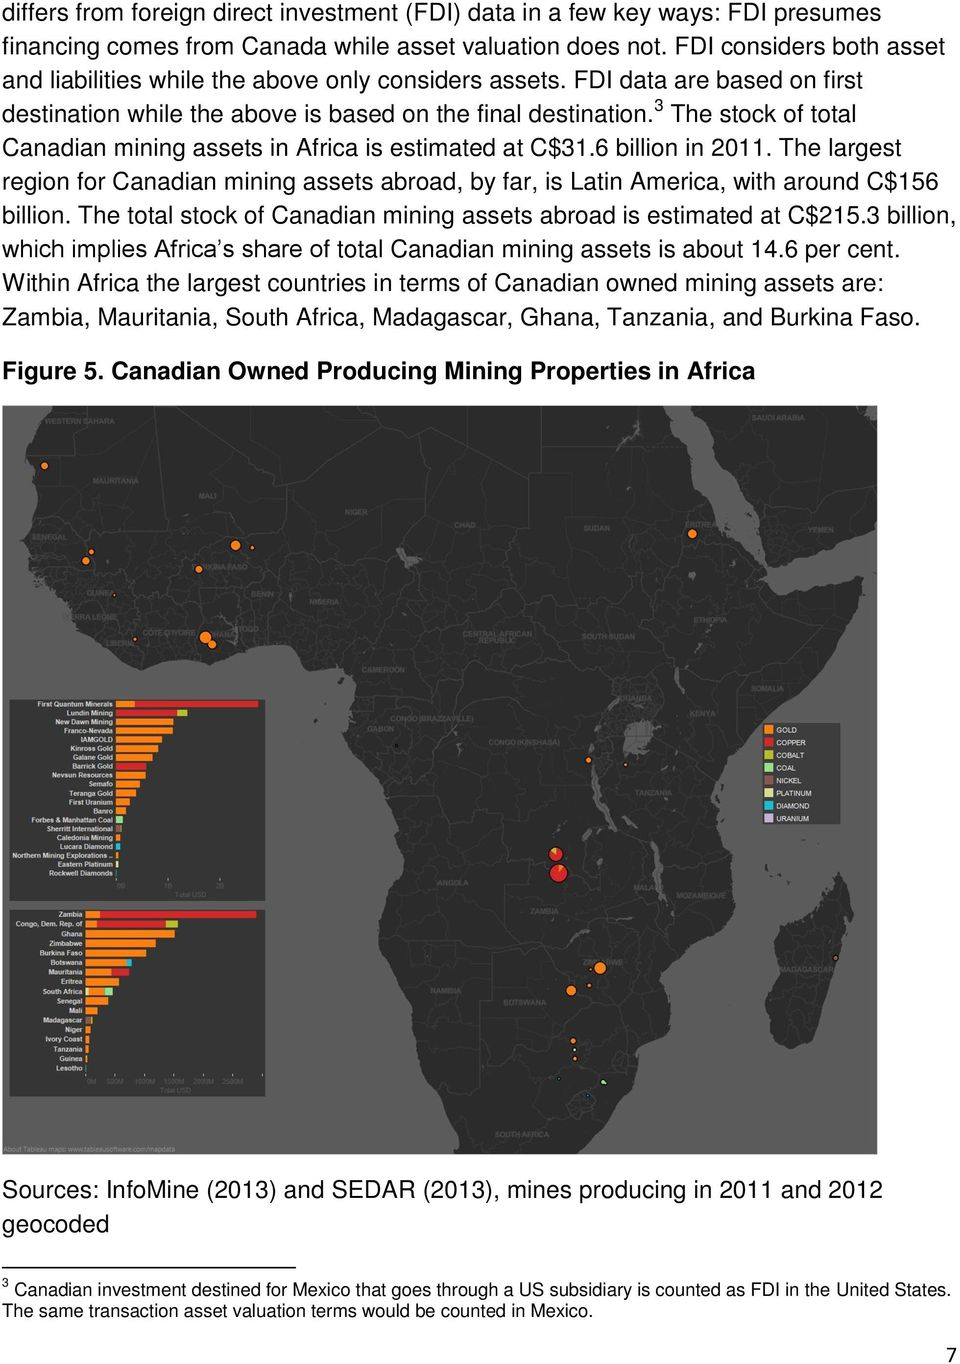 3 The stock of total Canadian mining assets in Africa is estimated at C$31.6 billion in 2011. The largest region for Canadian mining assets abroad, by far, is Latin America, with around C$156 billion.